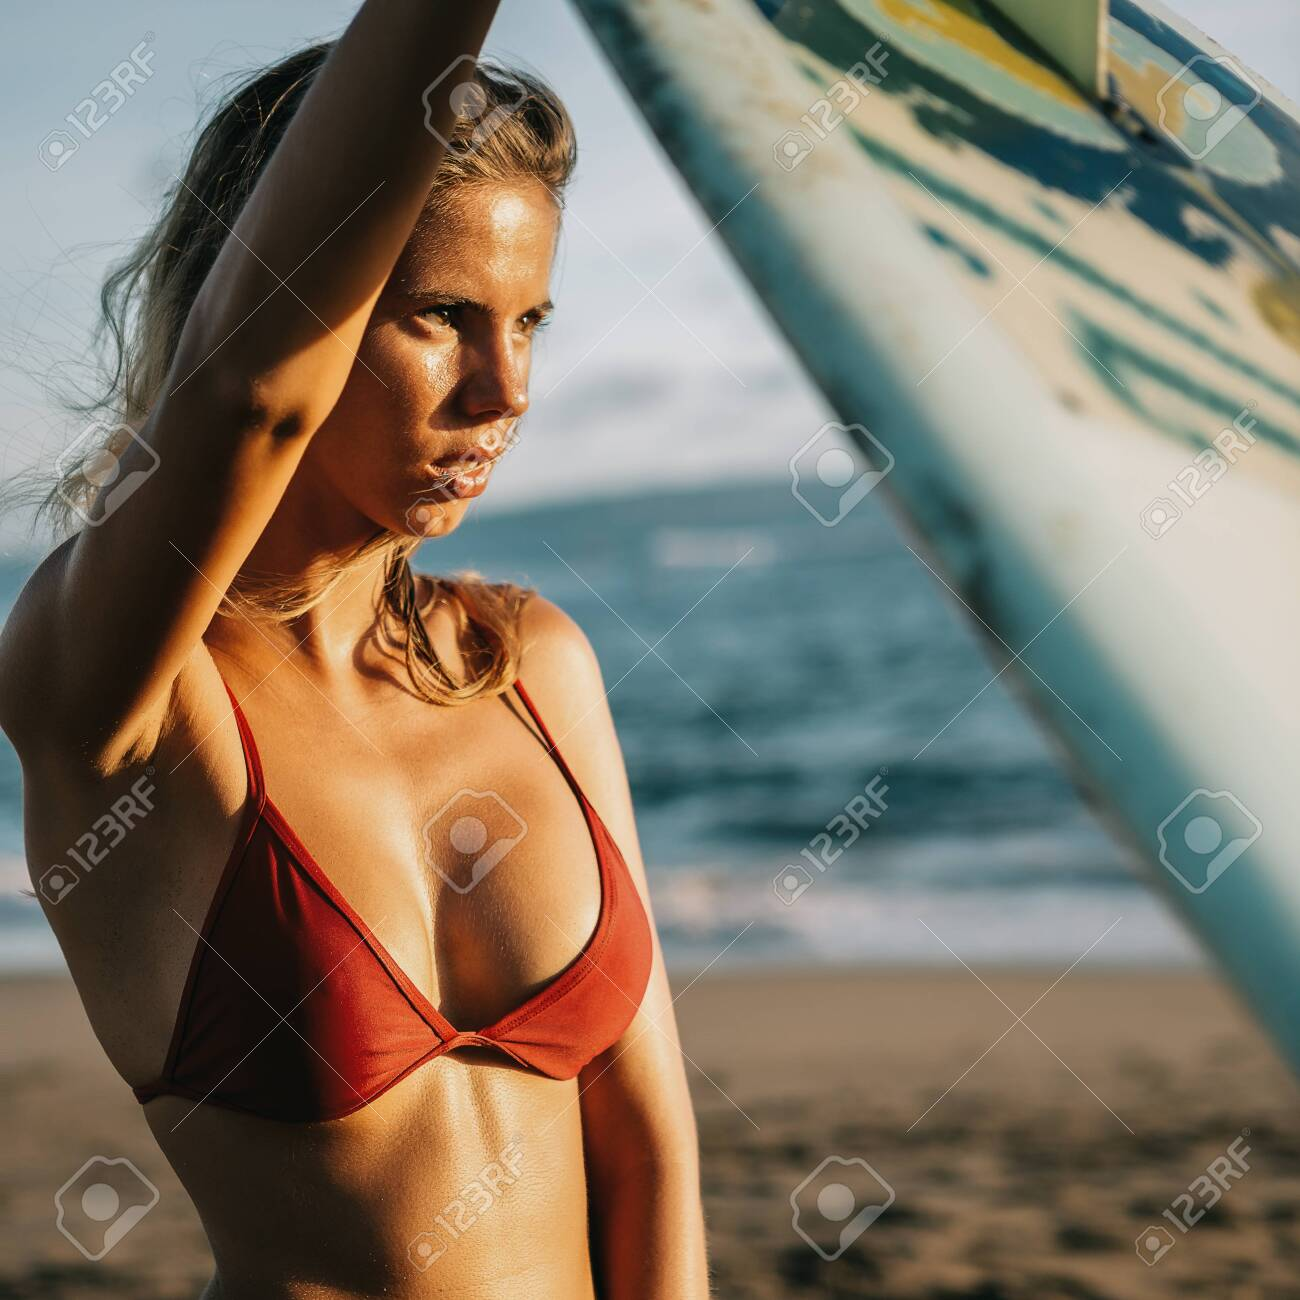 Young Fit Surfer Girl In Sexy Red Bikini With Surfing Longboard